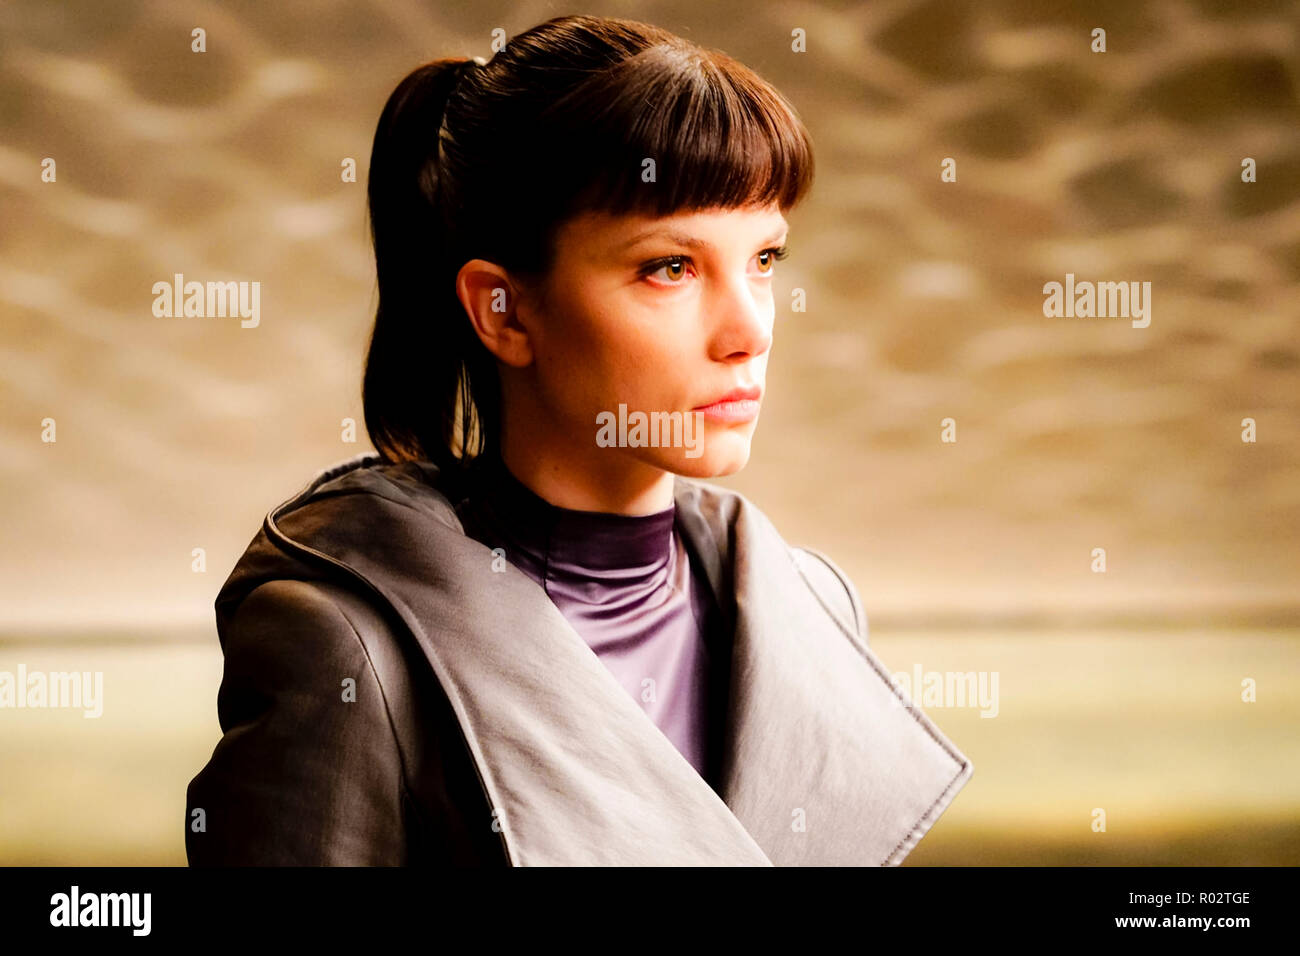 Luv (Sylvia Hoeks) Nexus-9 model Replicant and assistant Niander Wallace from Blade Runner 2049 (2017) directed by Denis Villeneuve. A sequel to the 1982 classic set thirty years later where a new blade runner uncovers a secret. - Stock Image